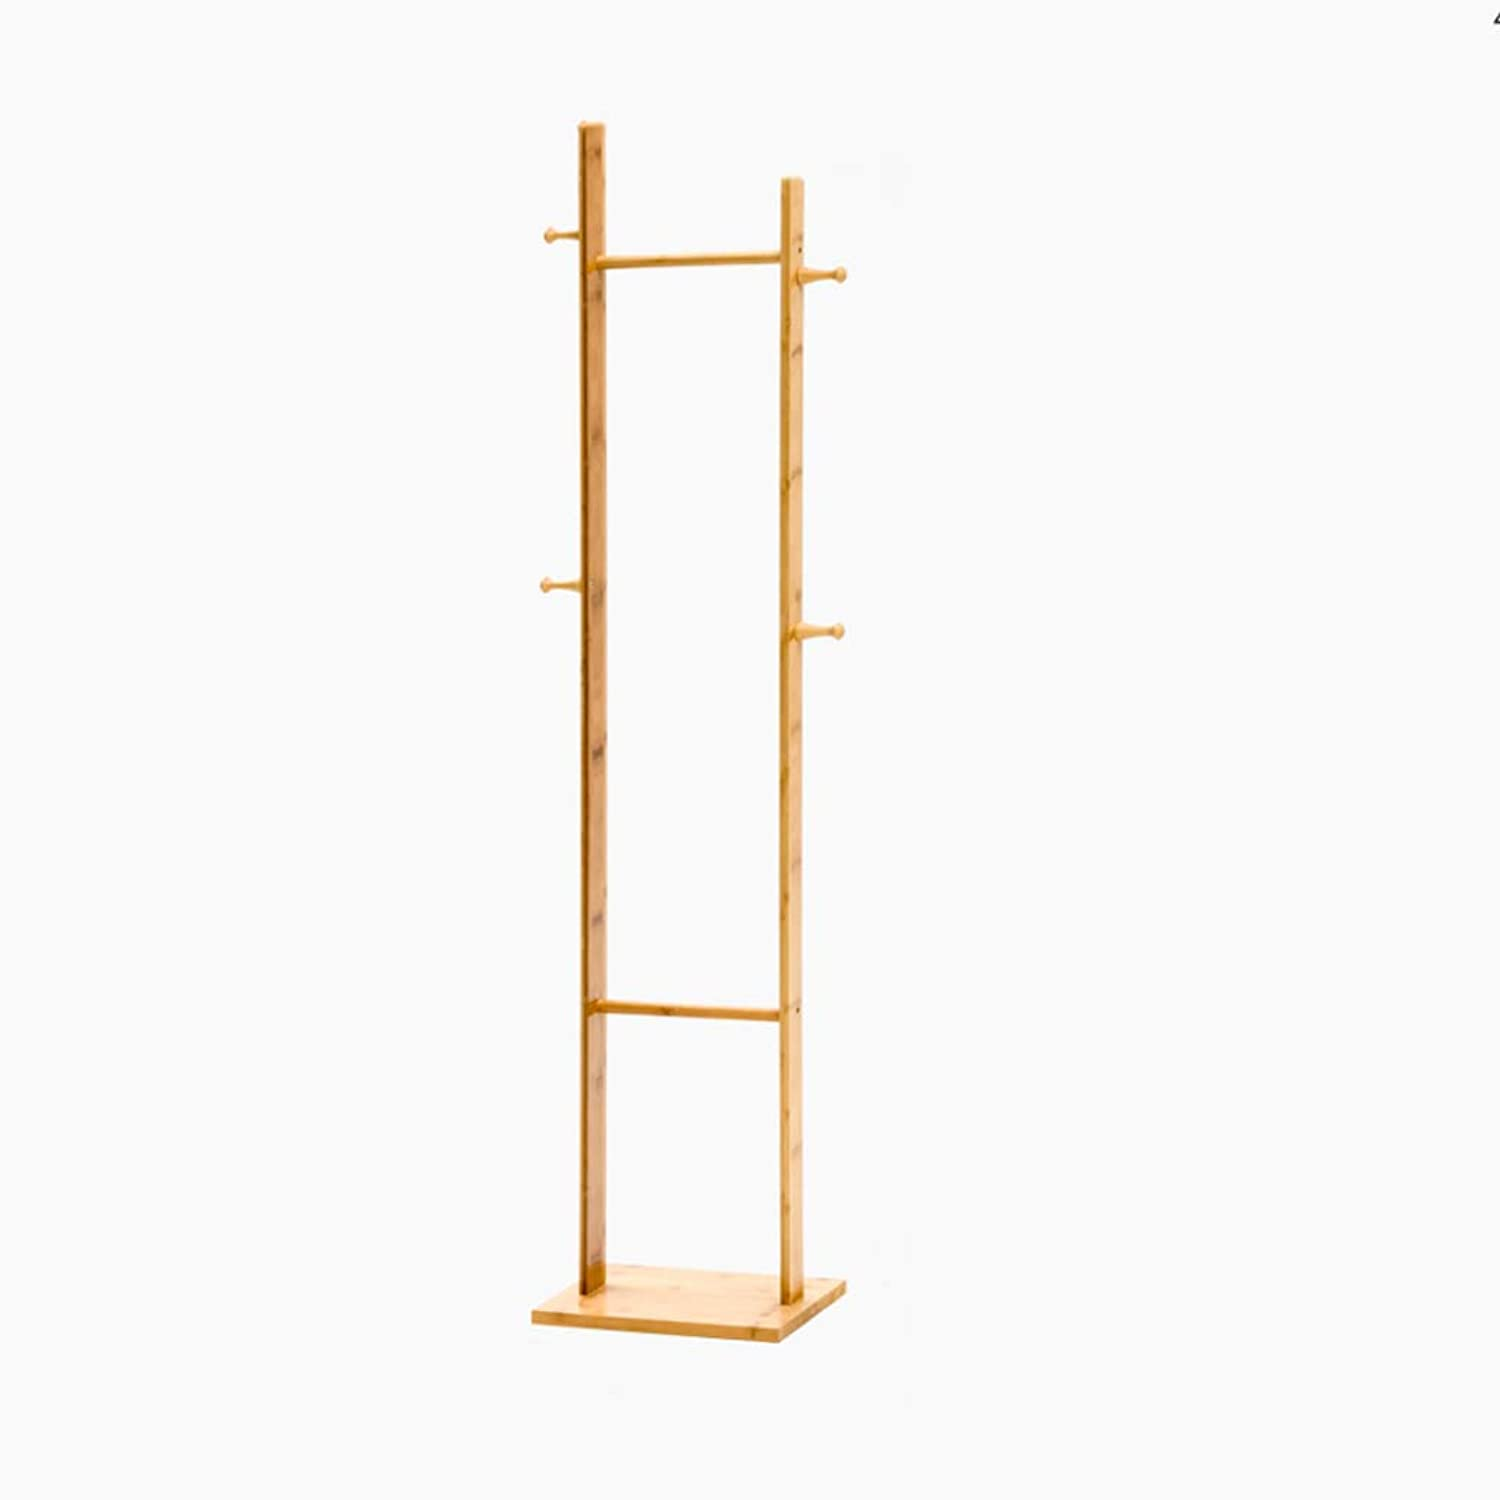 CIGONG-Coat rack Simple Modern Solid Wood Coat Rack Hanger Floor Stand Bedroom Storage Rack Living Room Home Square Base Hanger 163x24x33cm